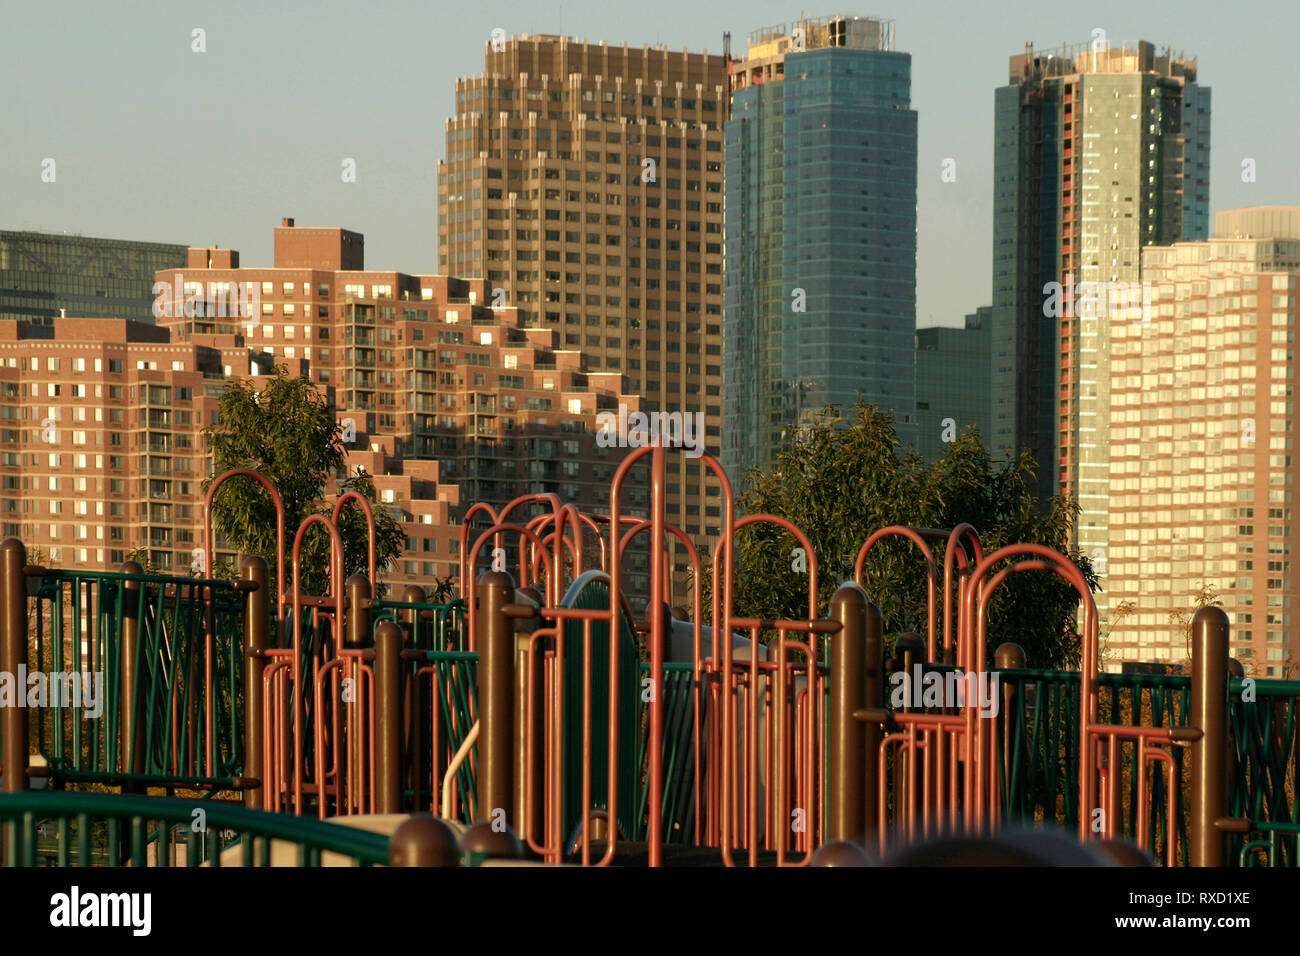 Buildings in Jersey City seen from the Liberty Park, NJ, USA - Stock Image